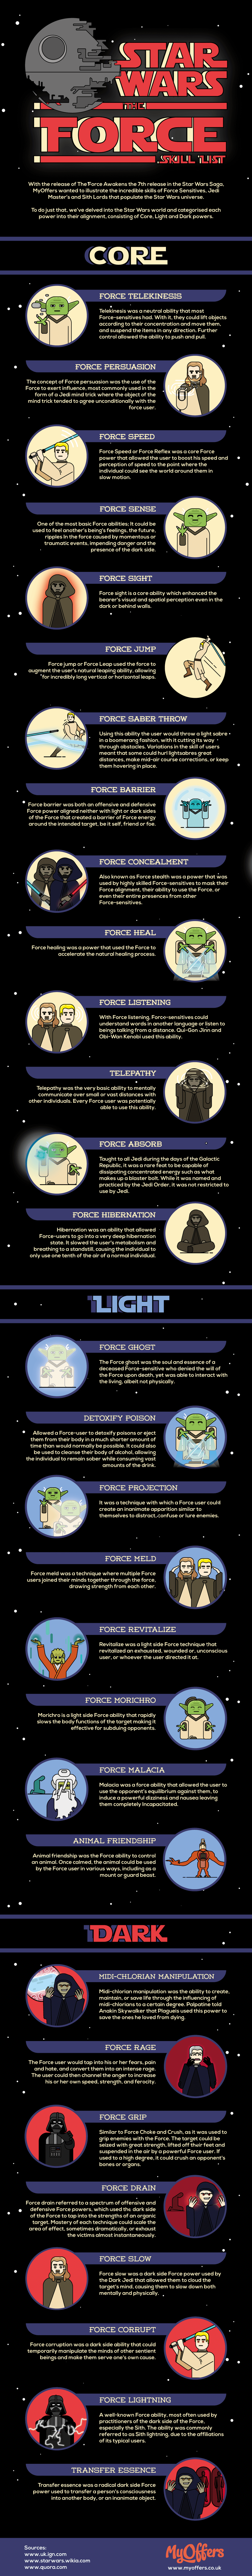 Star Wars: The Force Skill List #Infographic